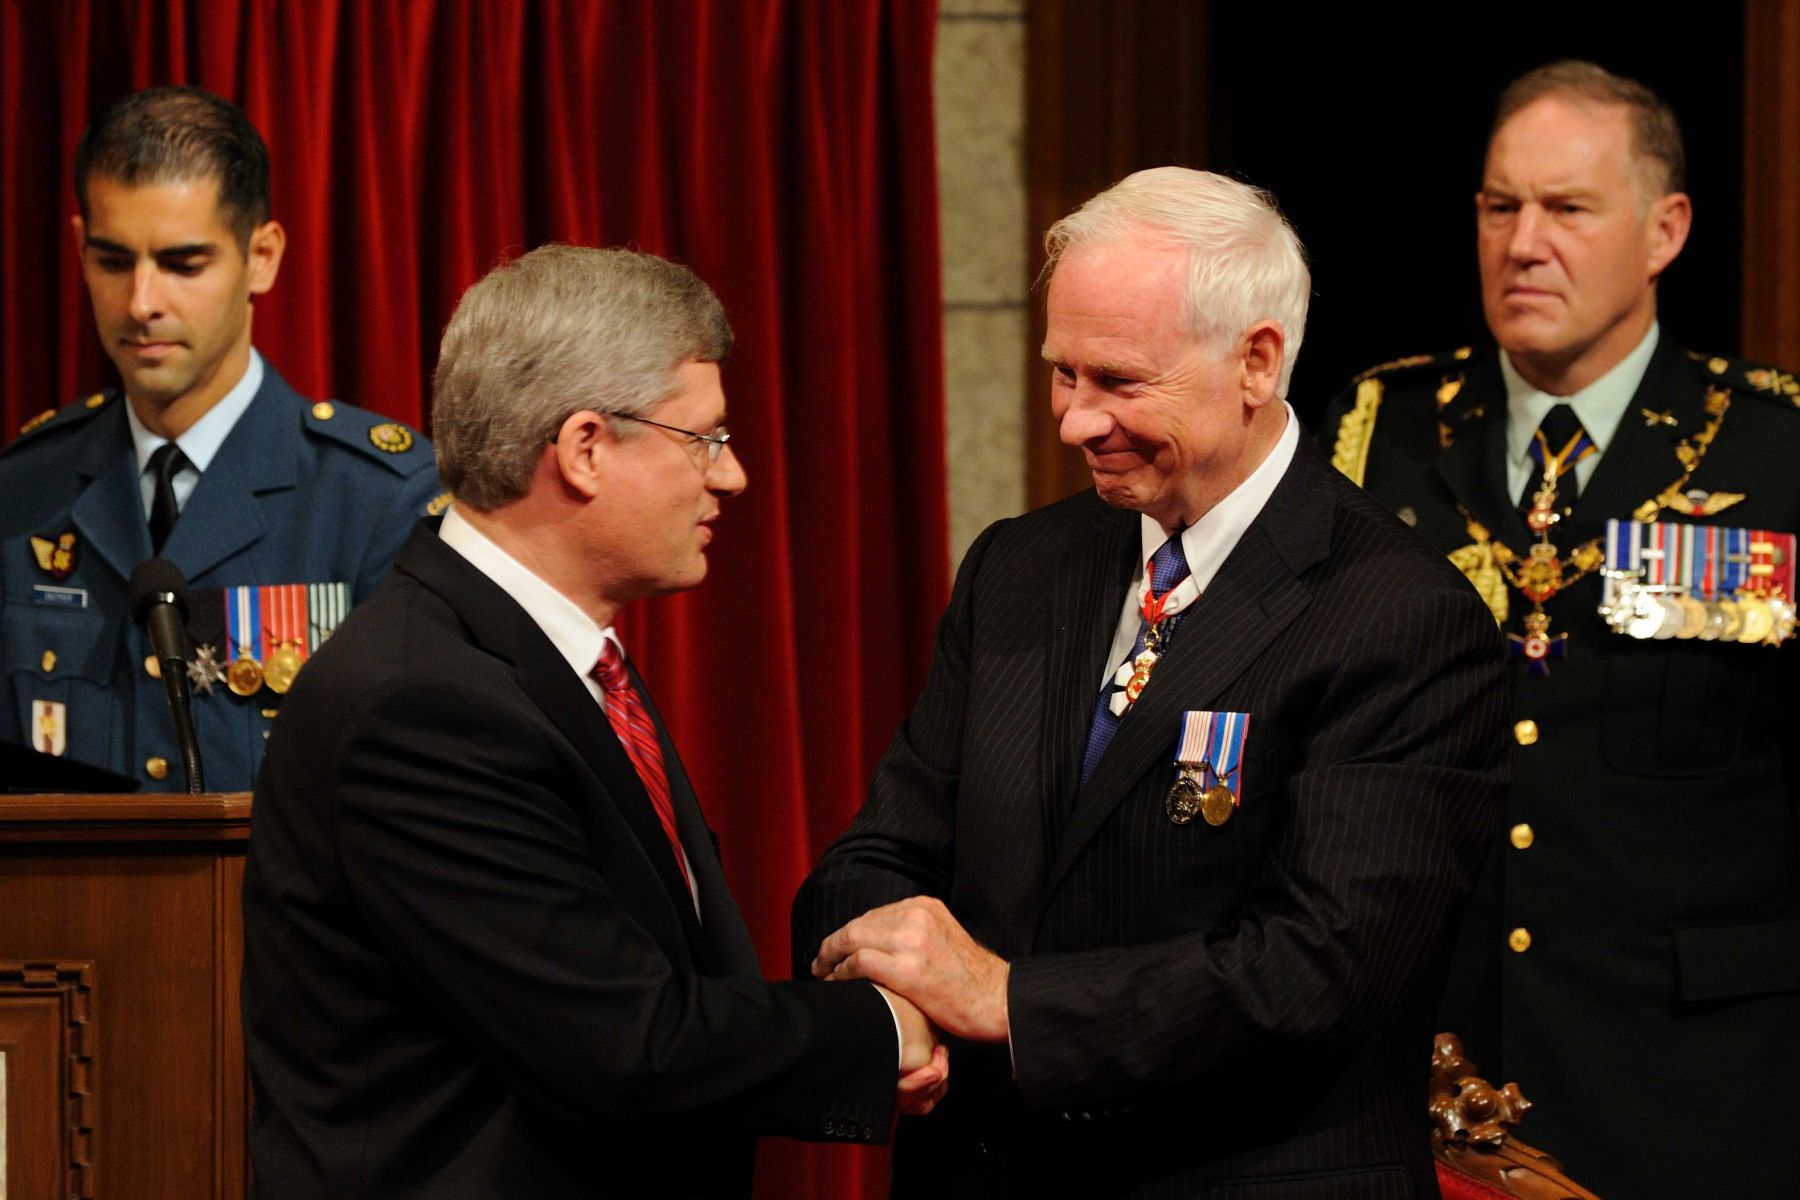 The Governor General is appointed by Her Majesty The Queen upon recommandation of the Prime Minister of Canada. The Right Honourable Stephen Harper is seen here congratulating the new Governor General.